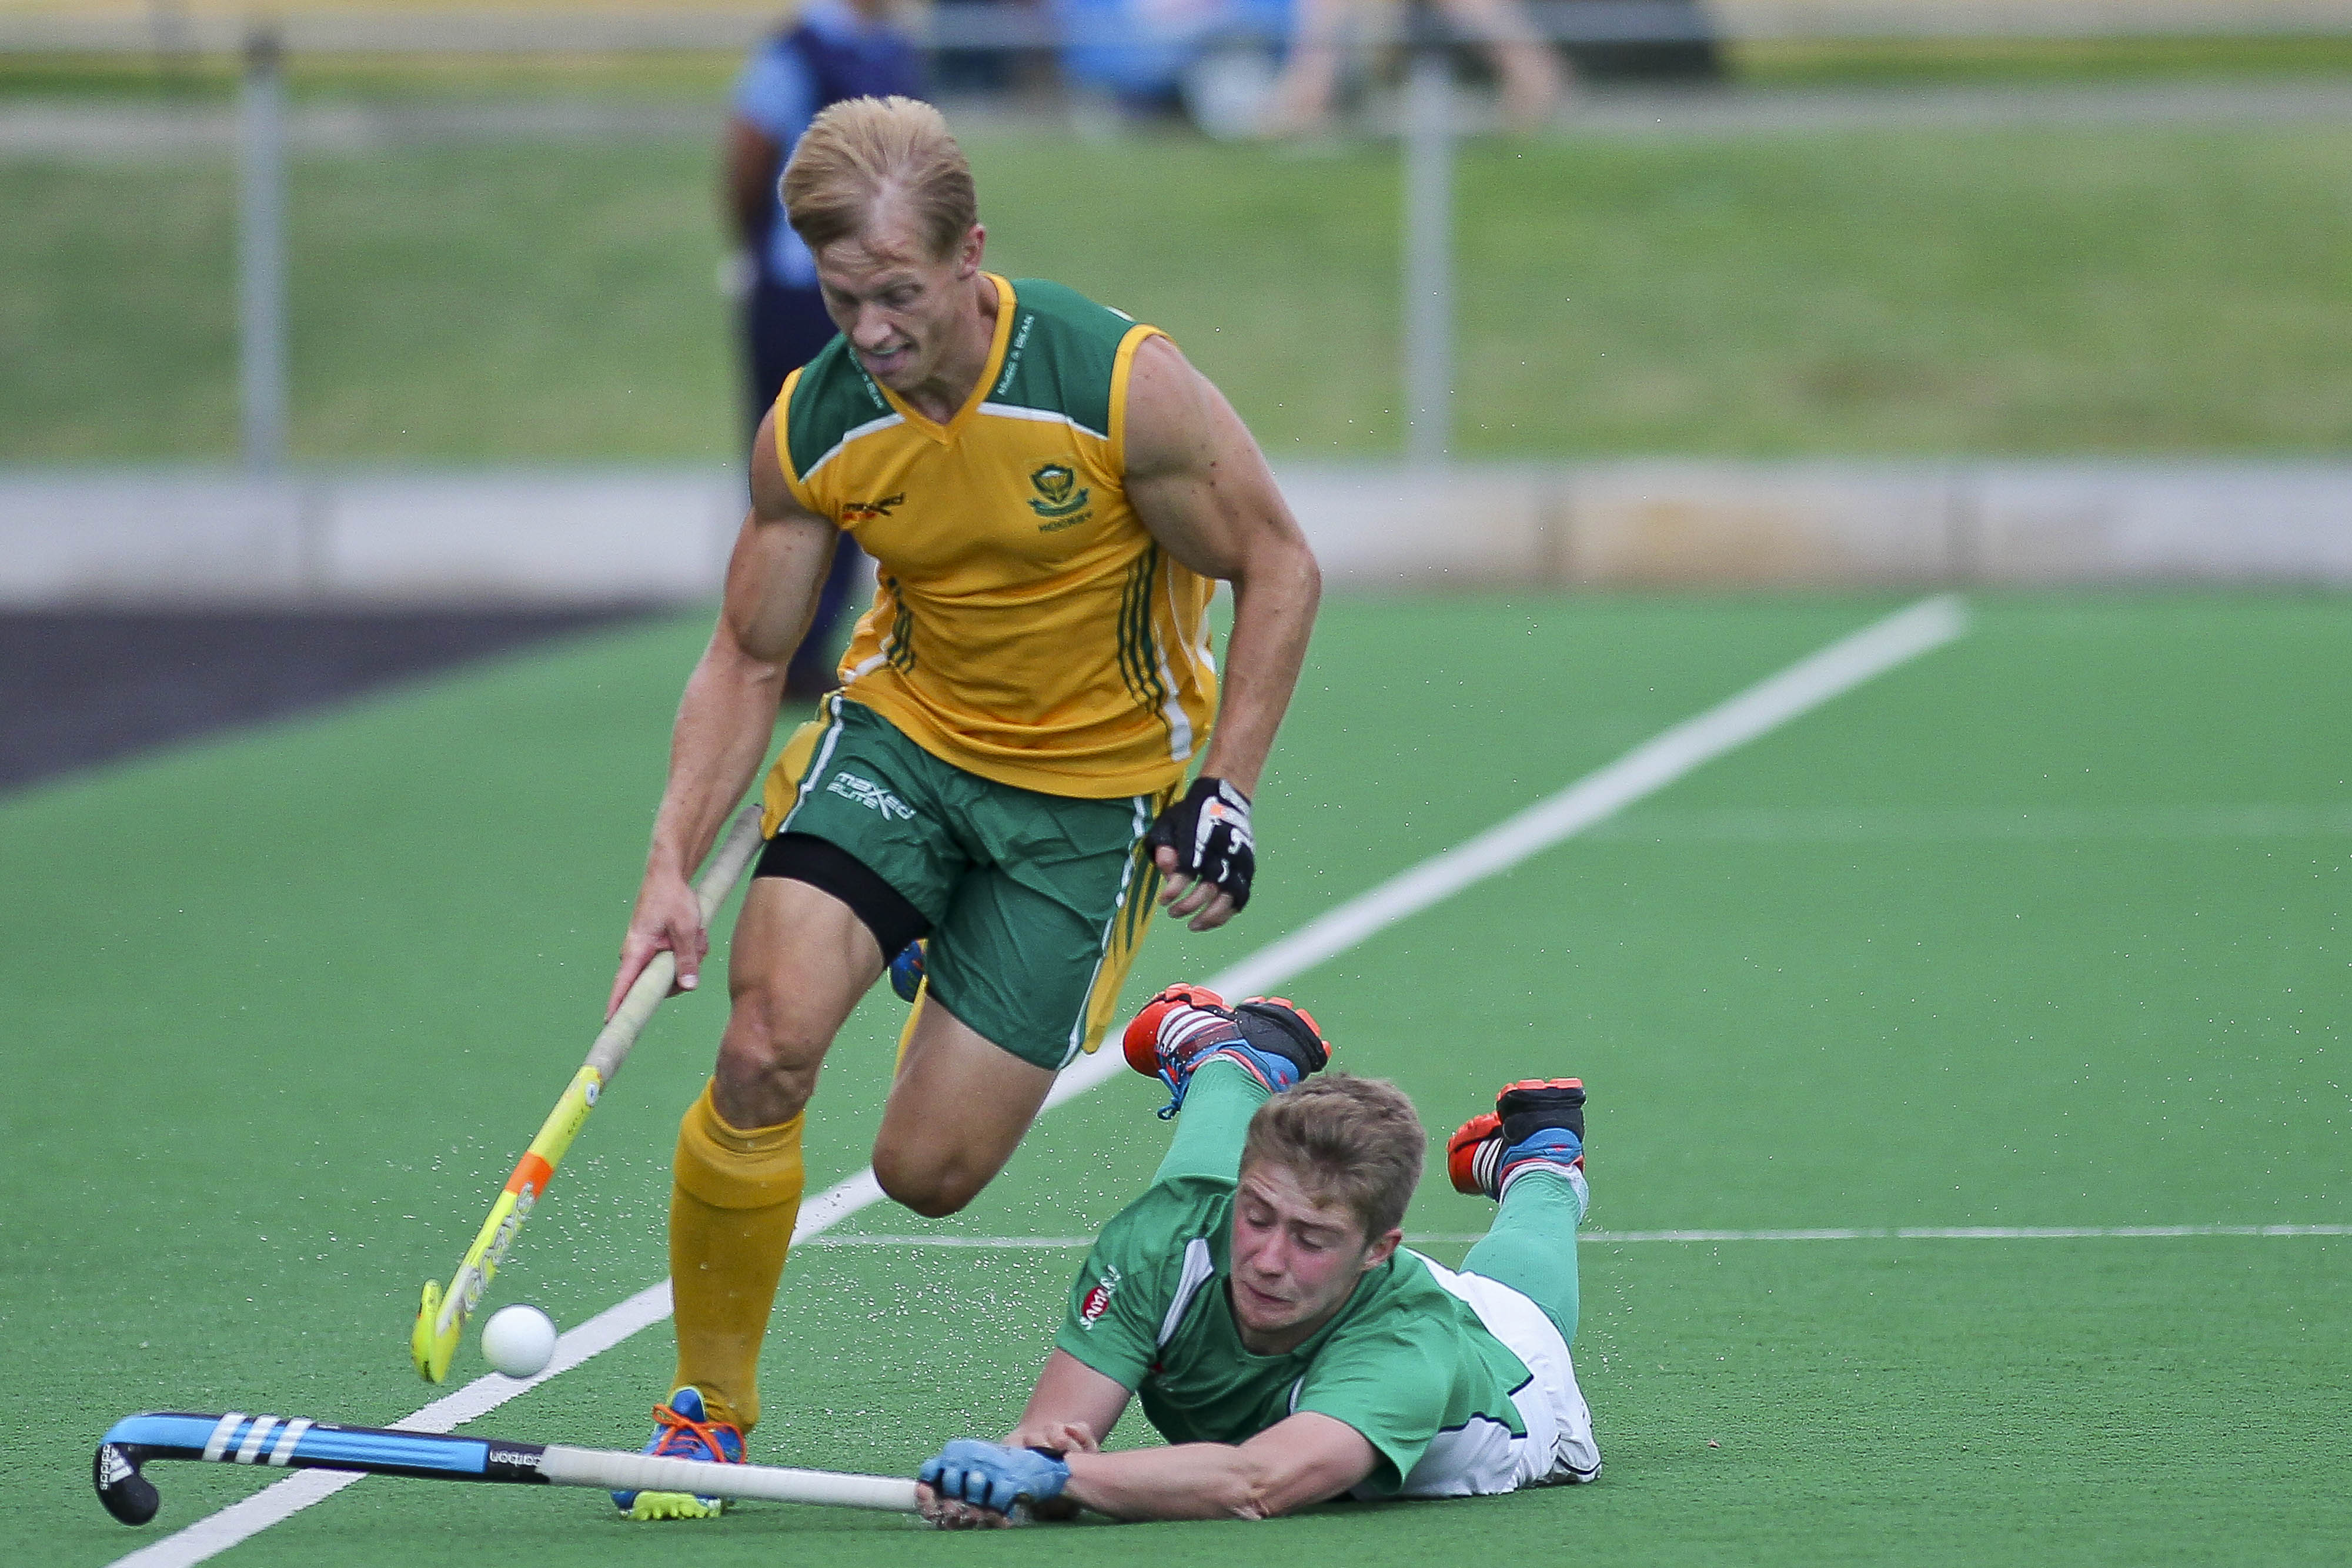 SA hockey squad named for Cape Town tournament